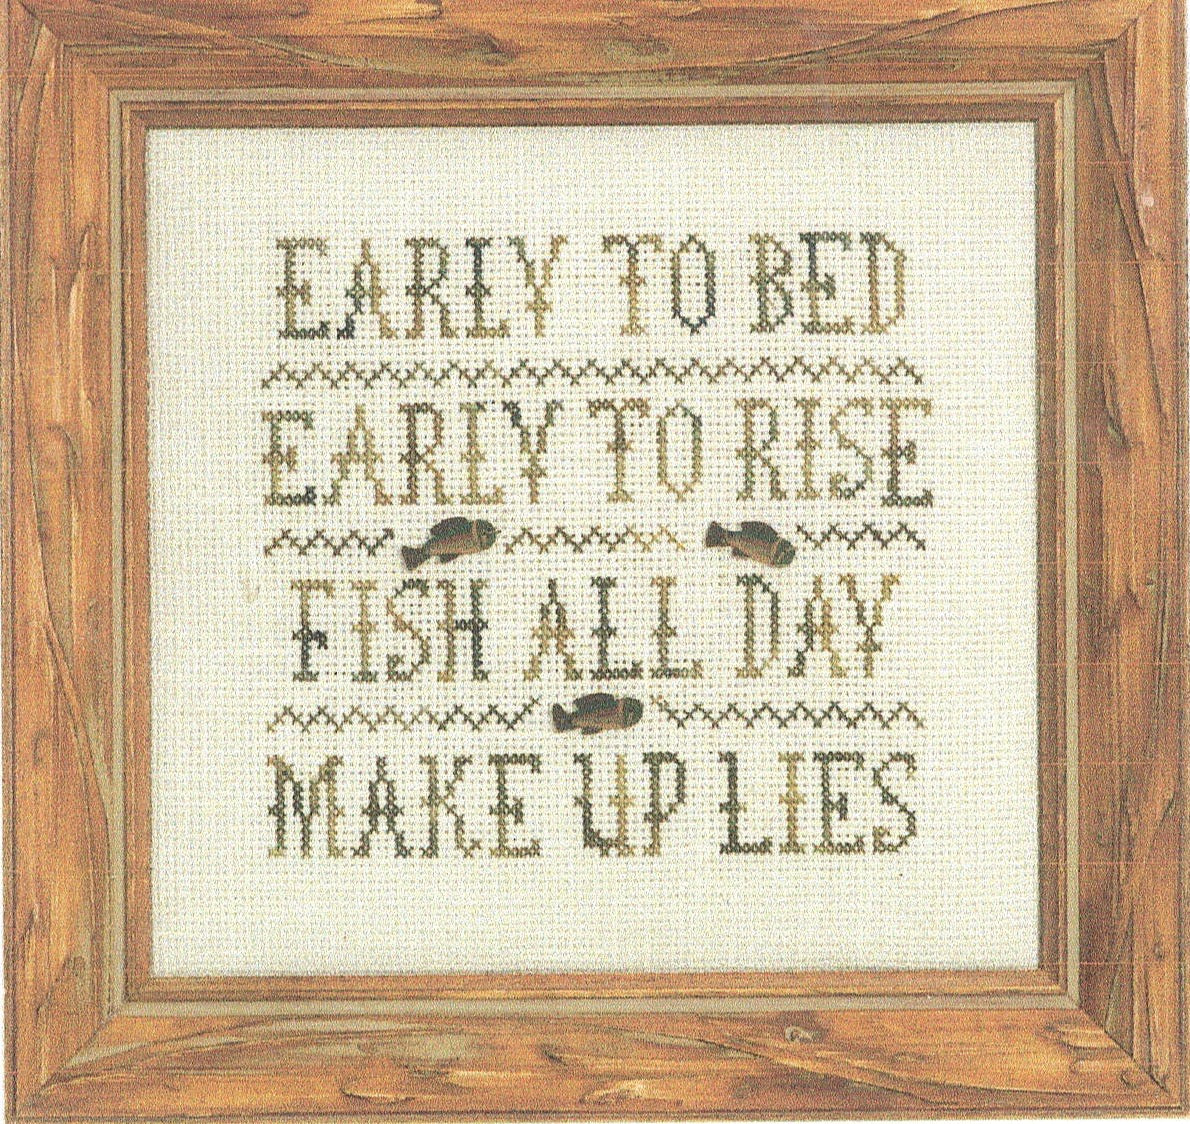 Fish All Day - Cross Stitch Pattern